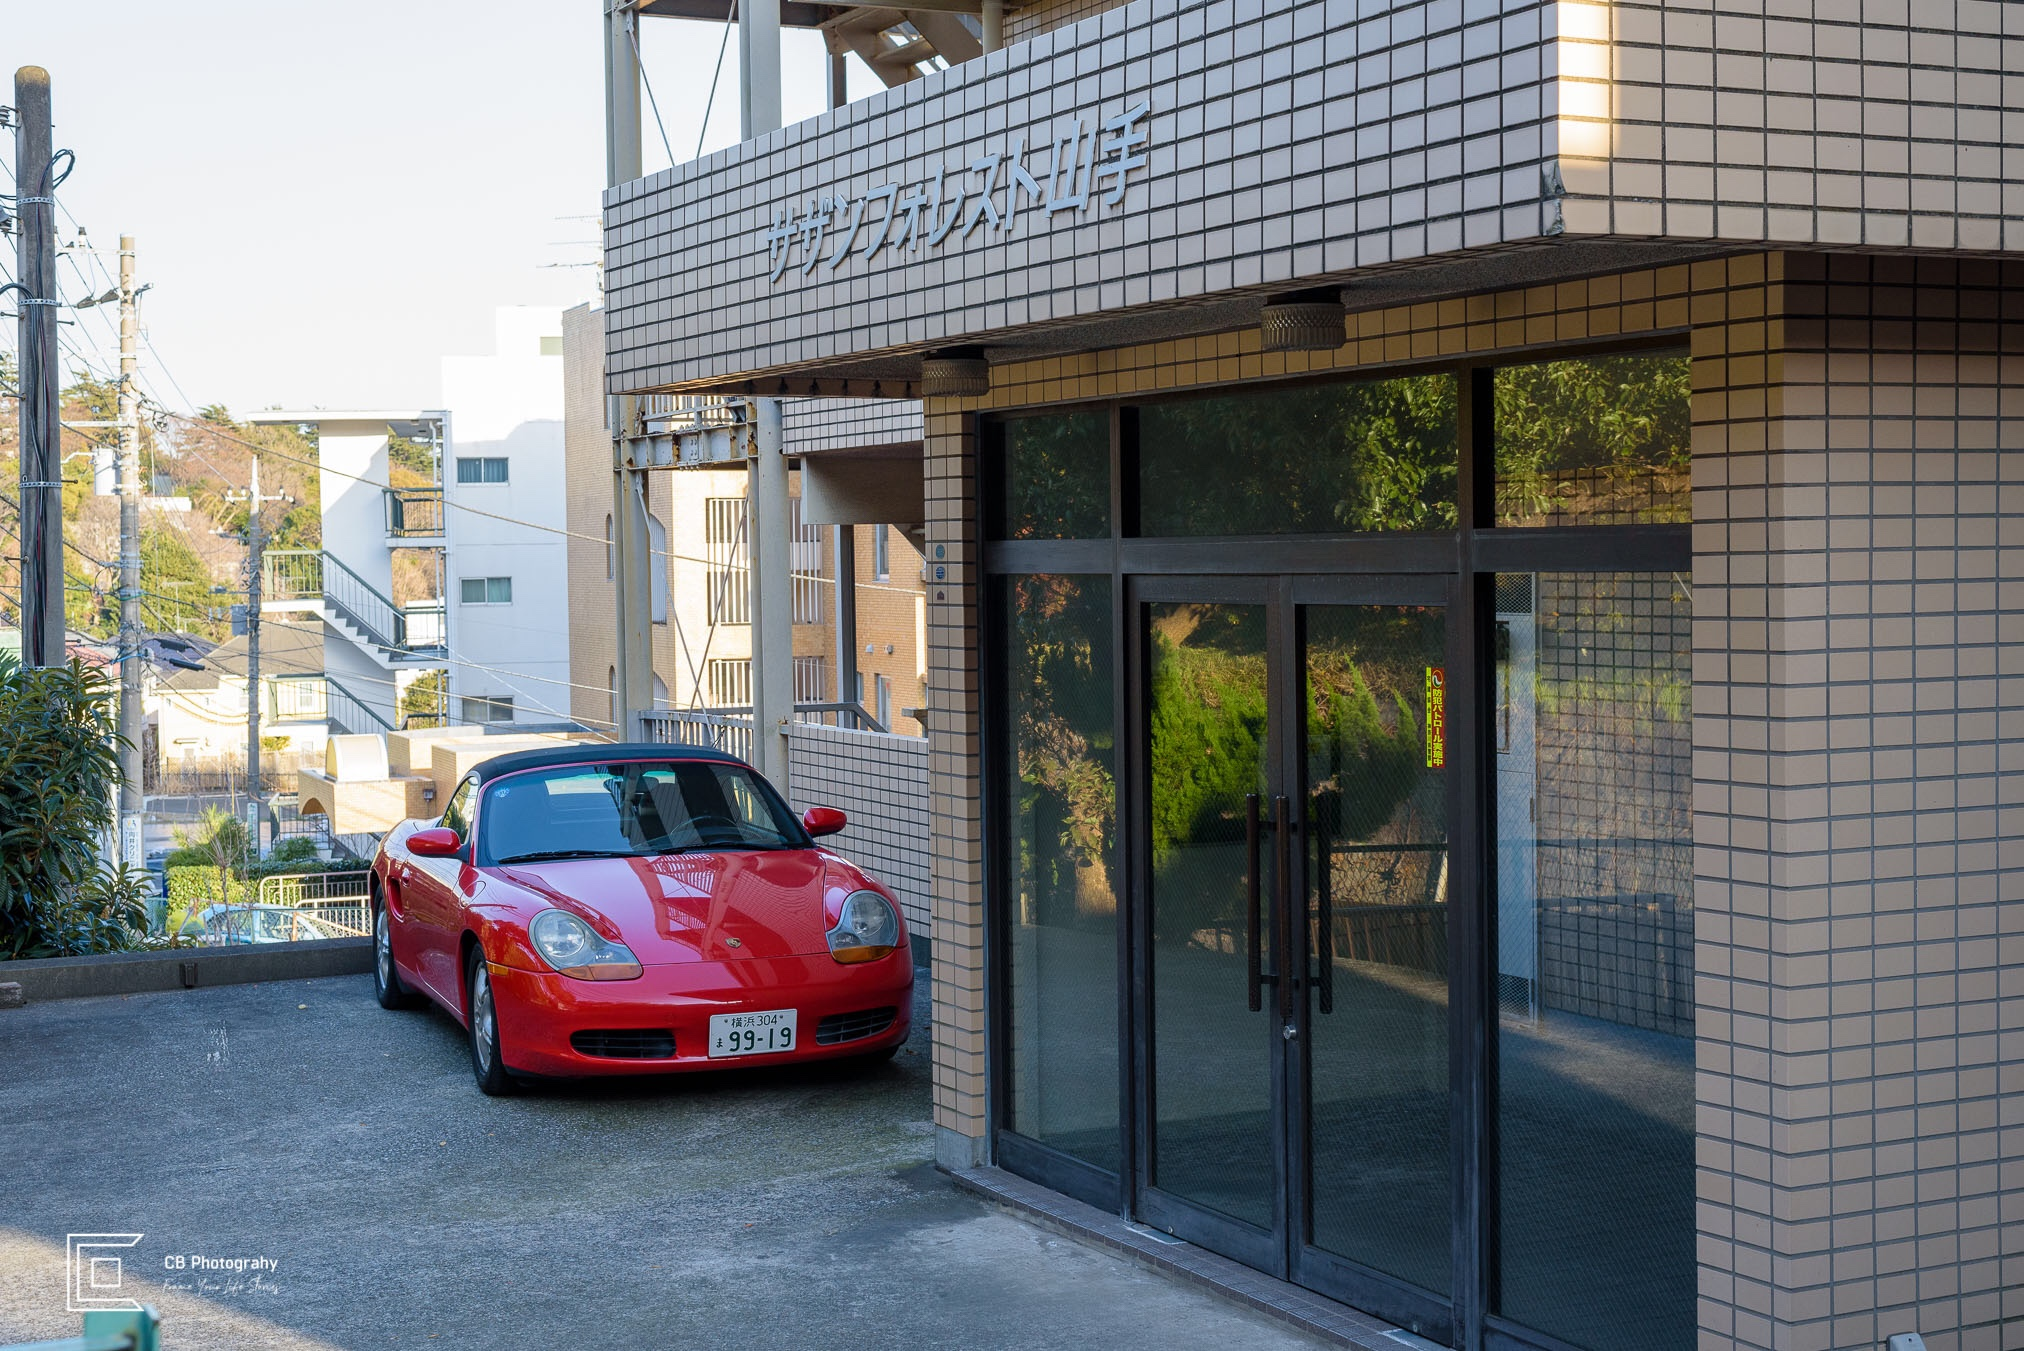 Red Porsche convertible parked in front of a building